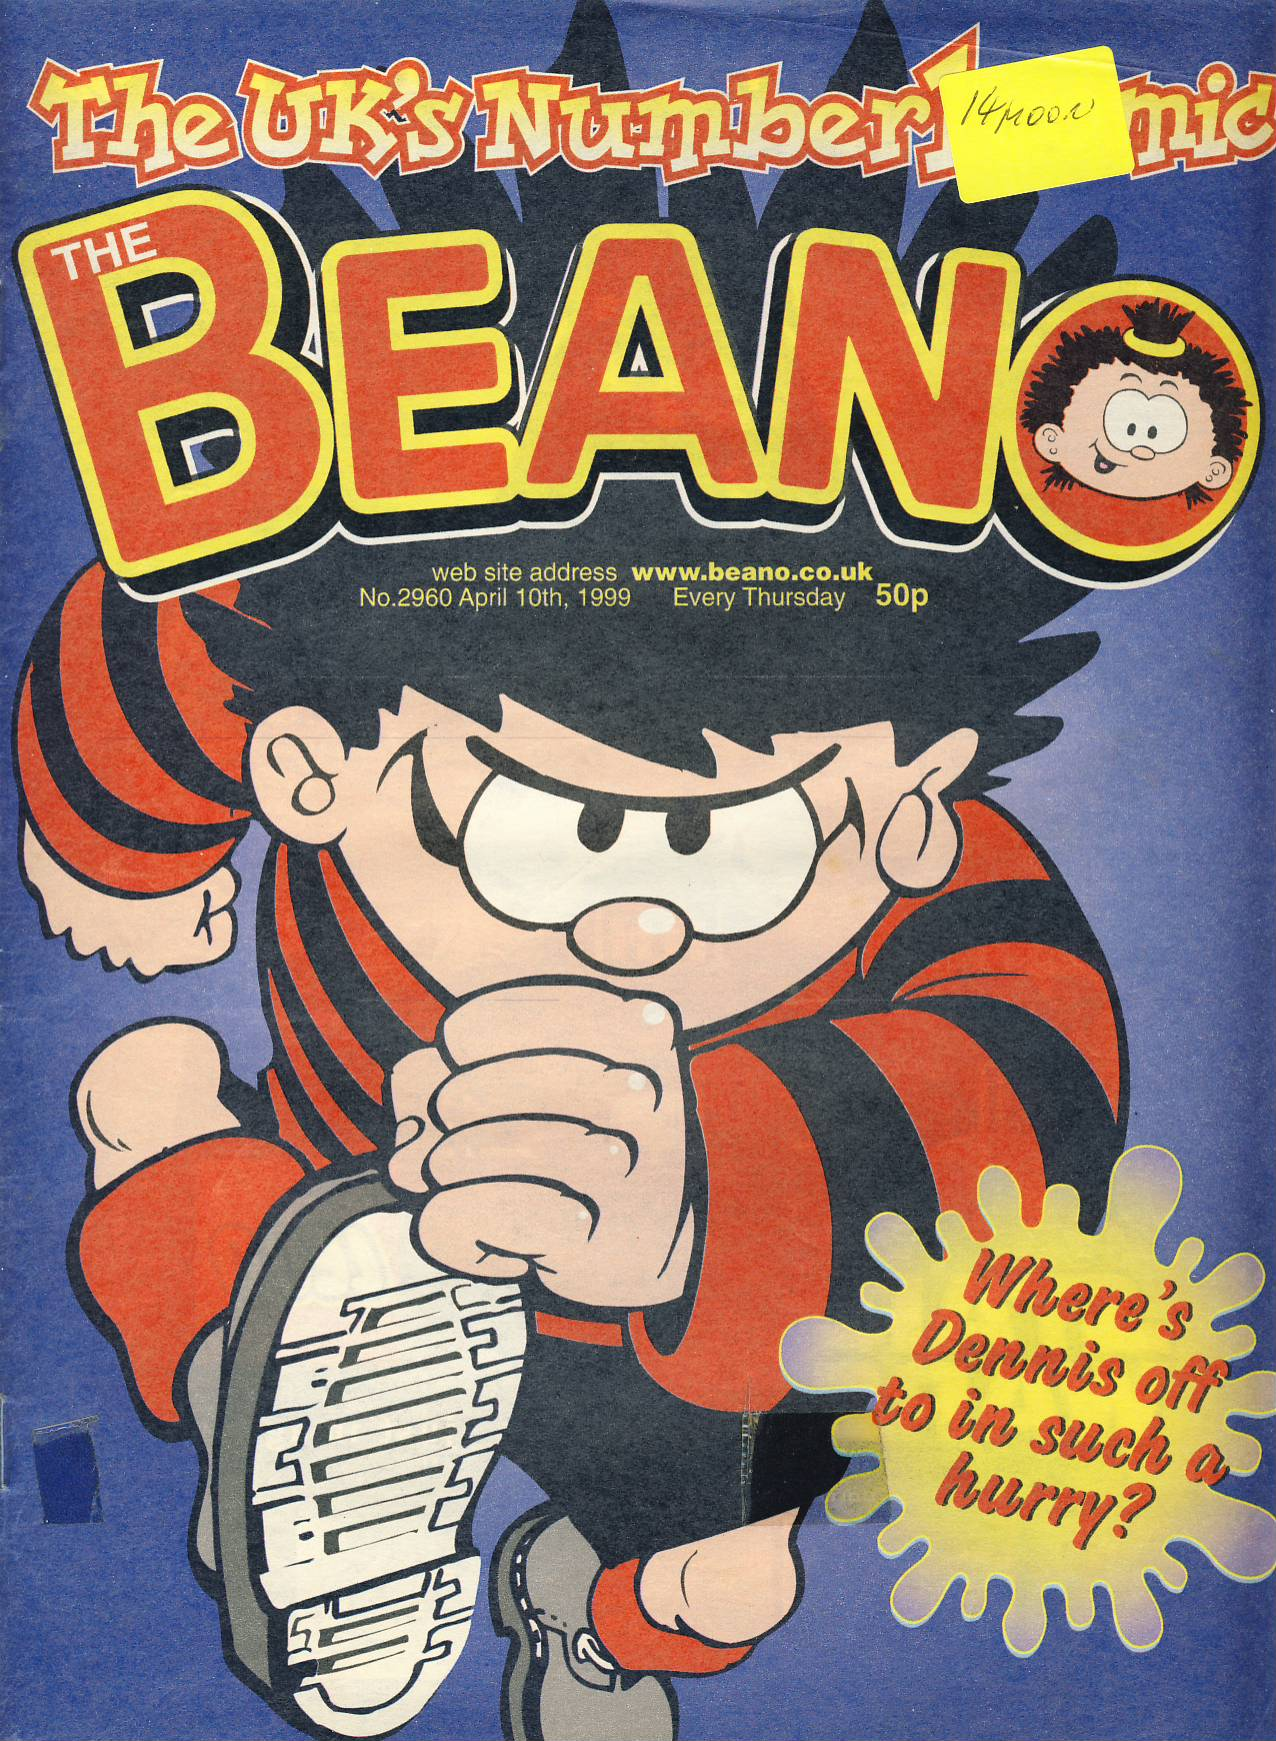 1999 April 10th BEANO vintage comic Good Gift Christmas Present Birthday Anniversary ref263 a pre-owned item in very good read condition.